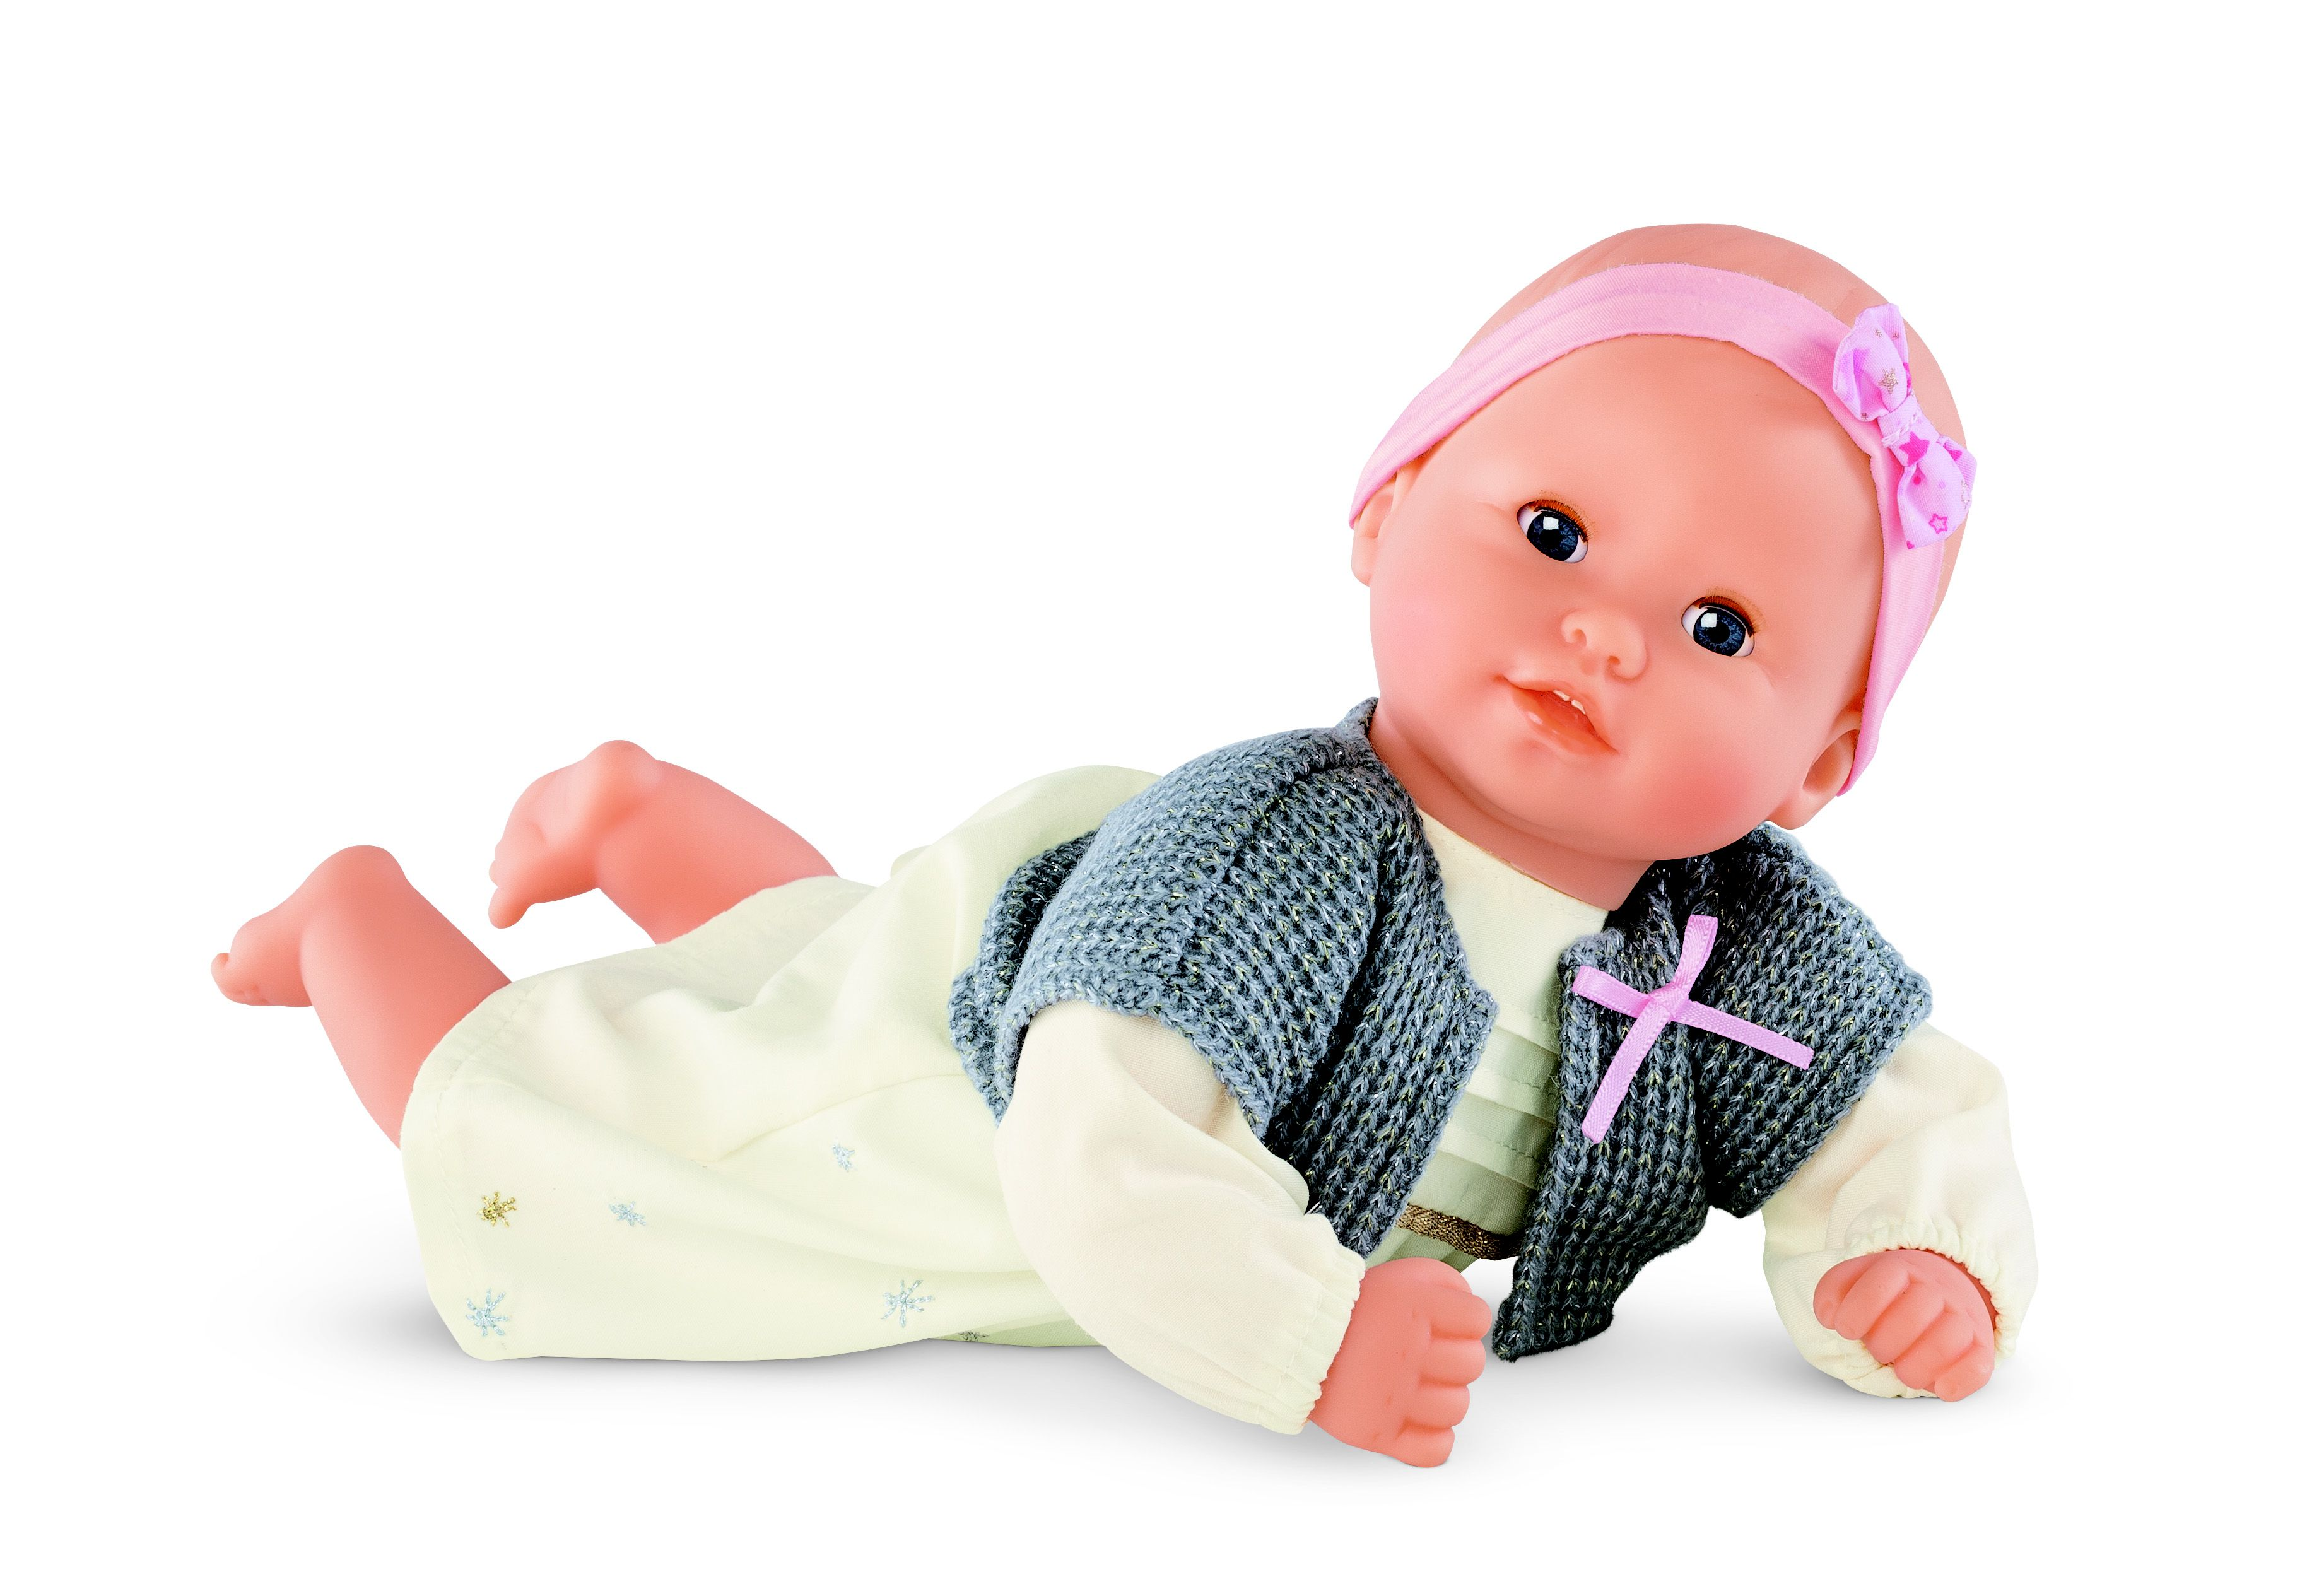 Baby Dolls Hailing From Many Manufacturers for All Ages and Bud s